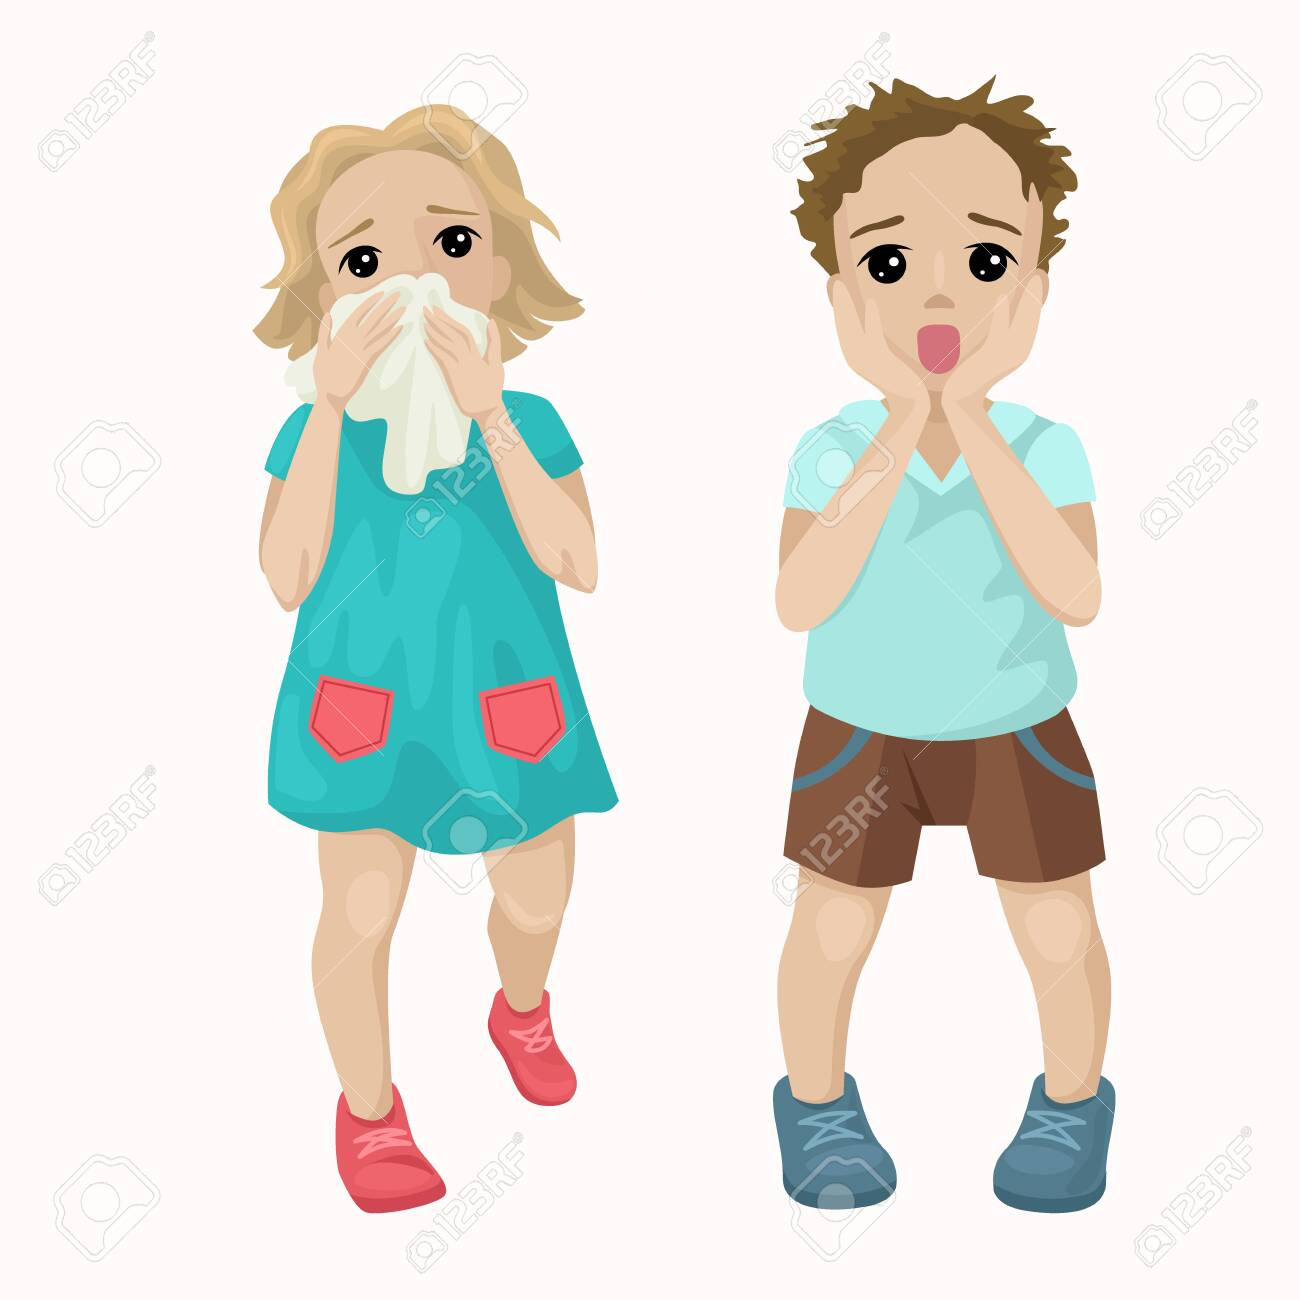 The girl runs from the fire, saves lives. The boy is frightened, screaming with fear, afraid of the incident. Children learn life safety. Vector cute characters on a white background. - 122175593